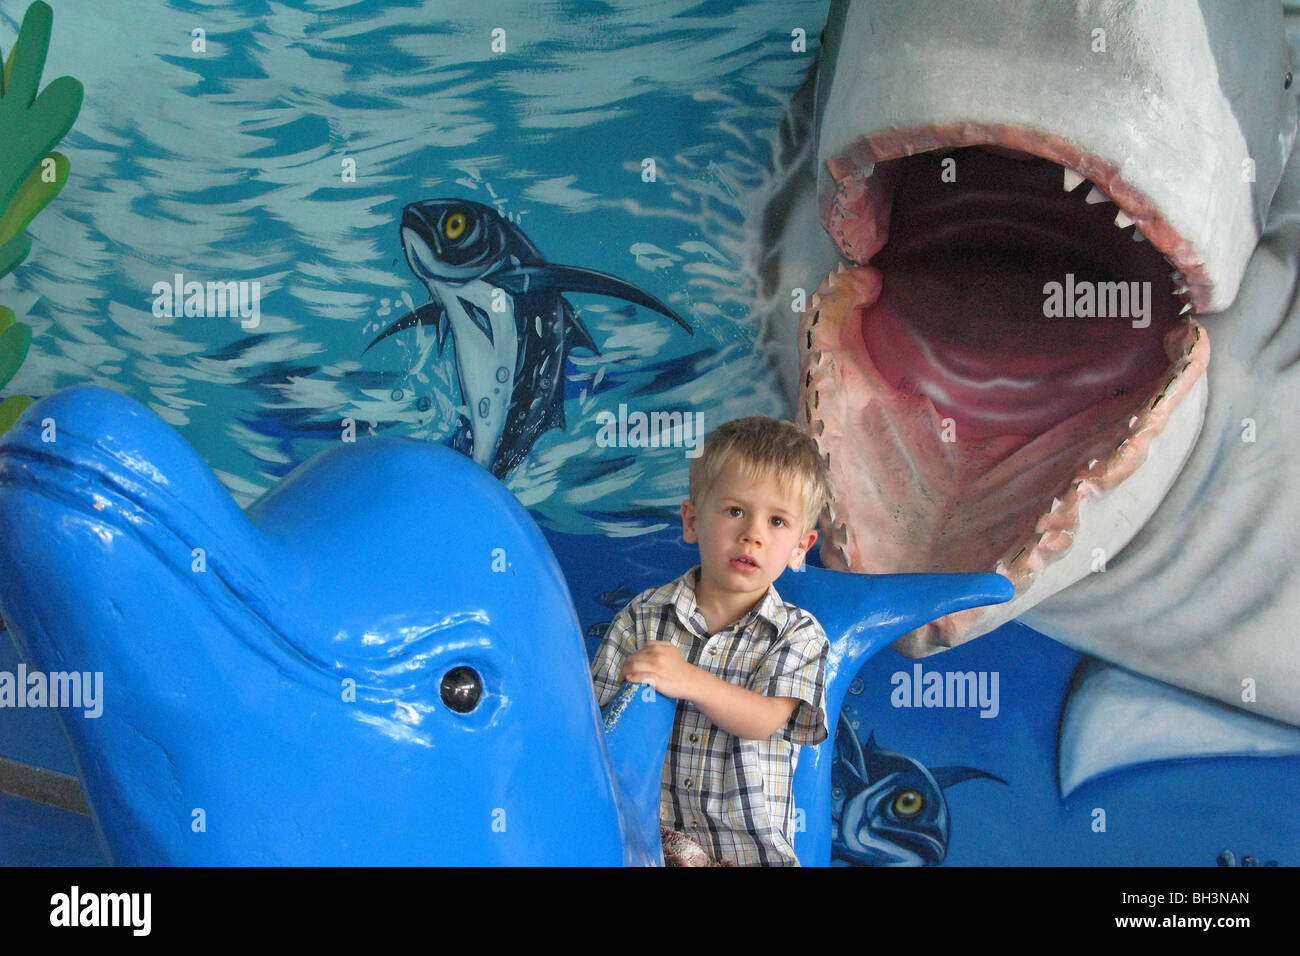 CHILD SITTING ON A DOLPHIN WITH A PAINTING OF AN OPEN-MOUTHED SHARK, PRACHUAP KHIRI KHAN AQUARIUM, THAILAND - Stock Image